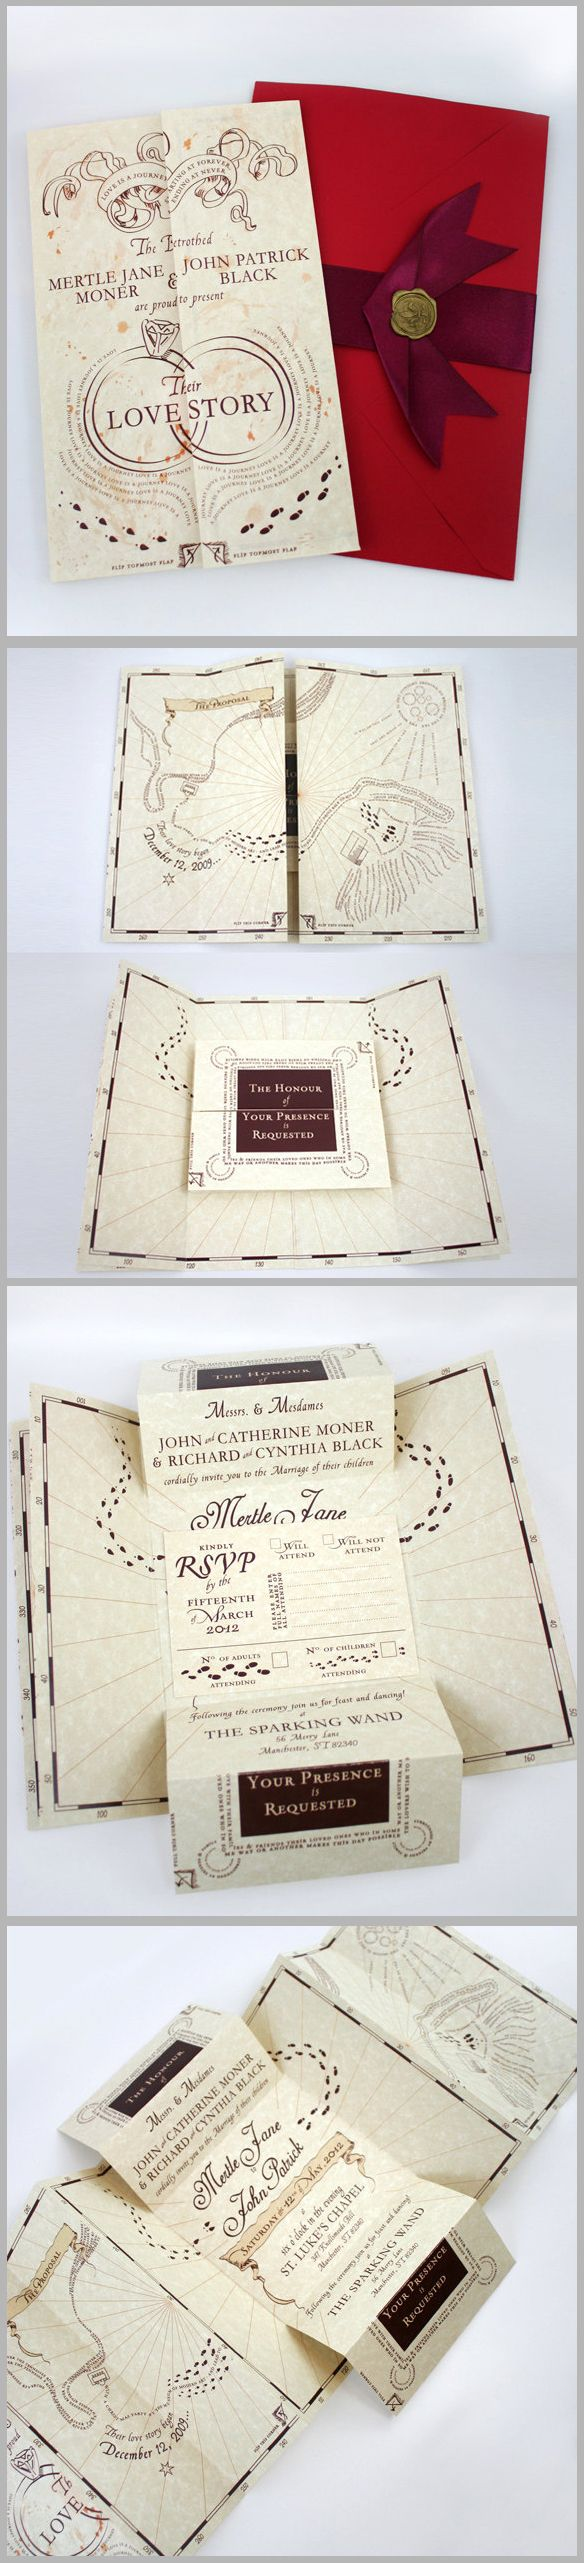 wedding invitations map%0A Romance Managed  Full Version  Harry Potter Inspired Invitation  SAMPLE  ONLY  Price is not full order per unit price  see description